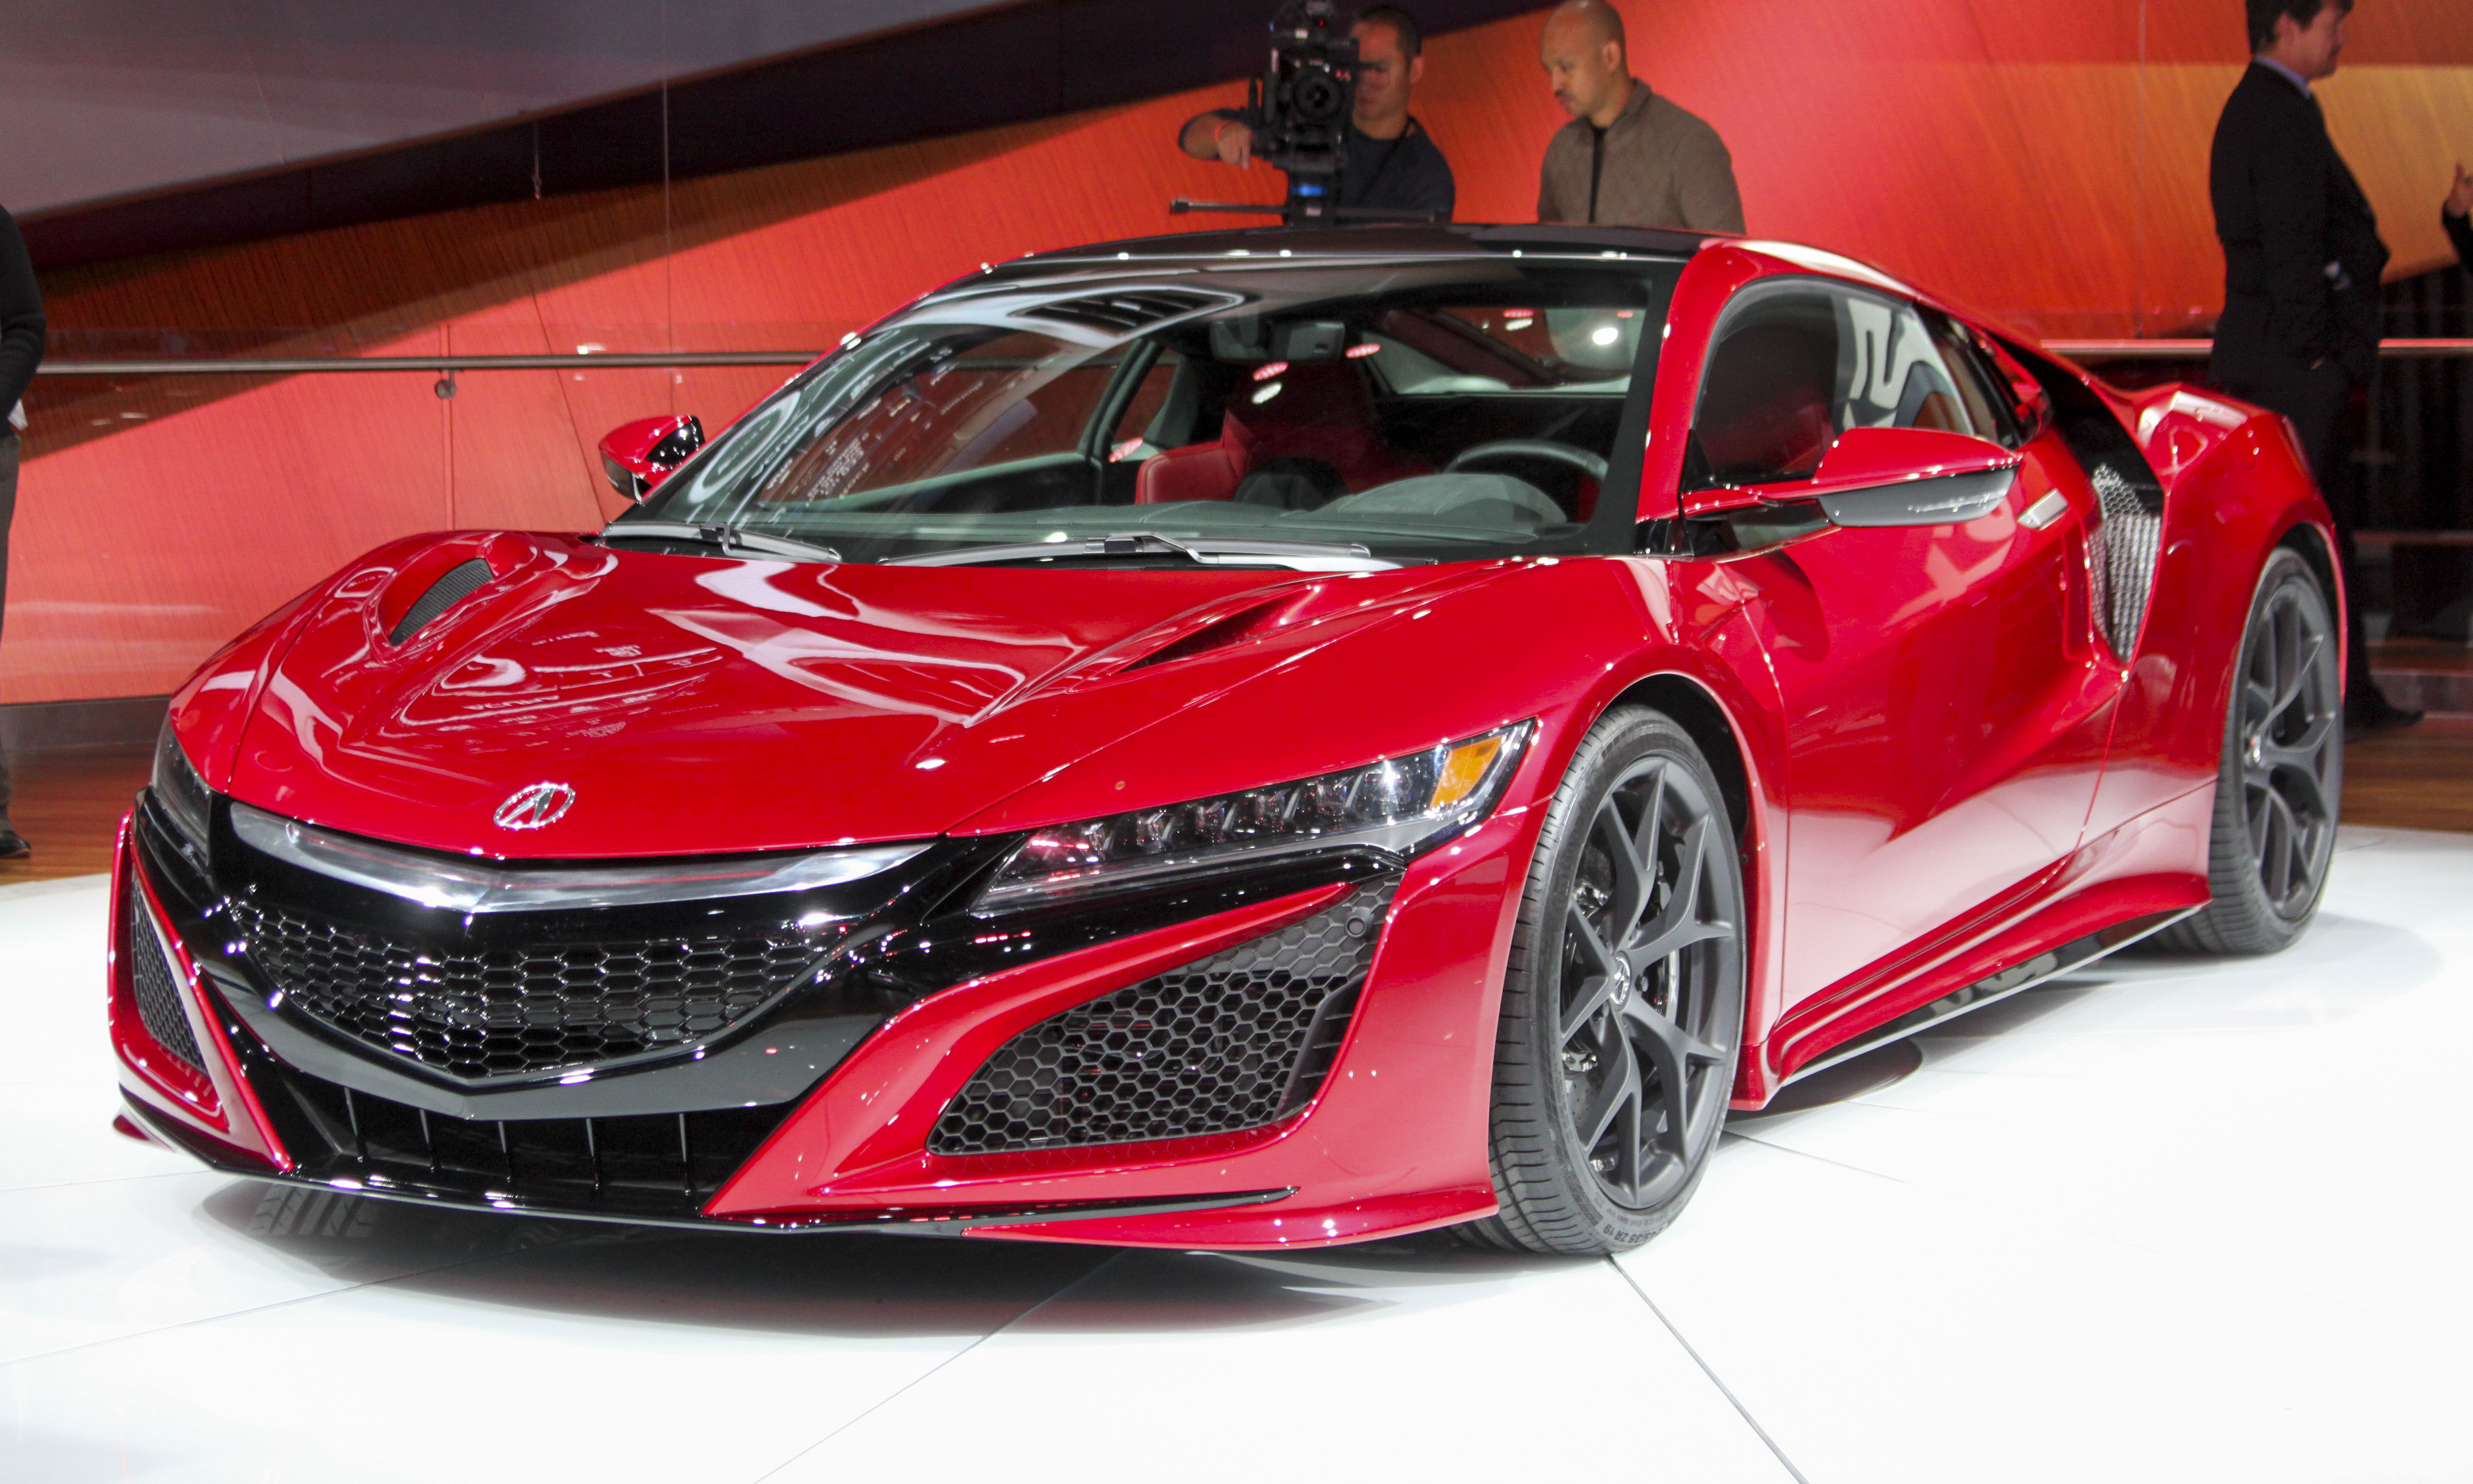 Acura NSX (c) Perry Stern